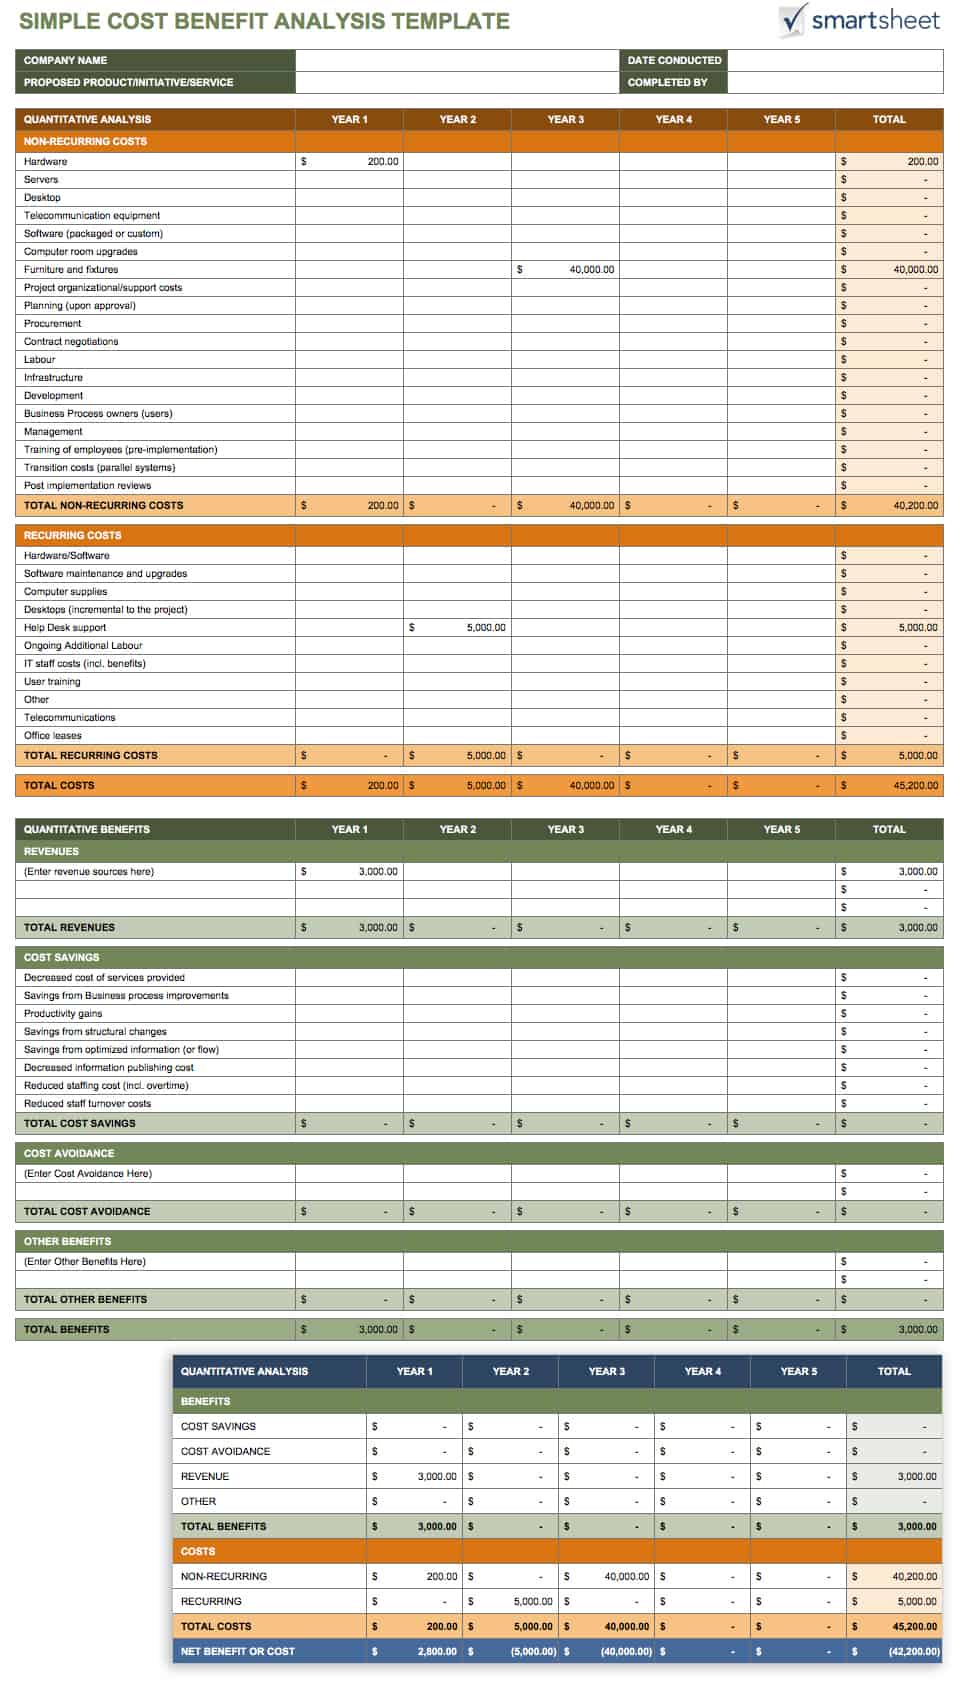 IC SimpleCostBenefitAnalysis. This Cost Benefit Analysis Template ...